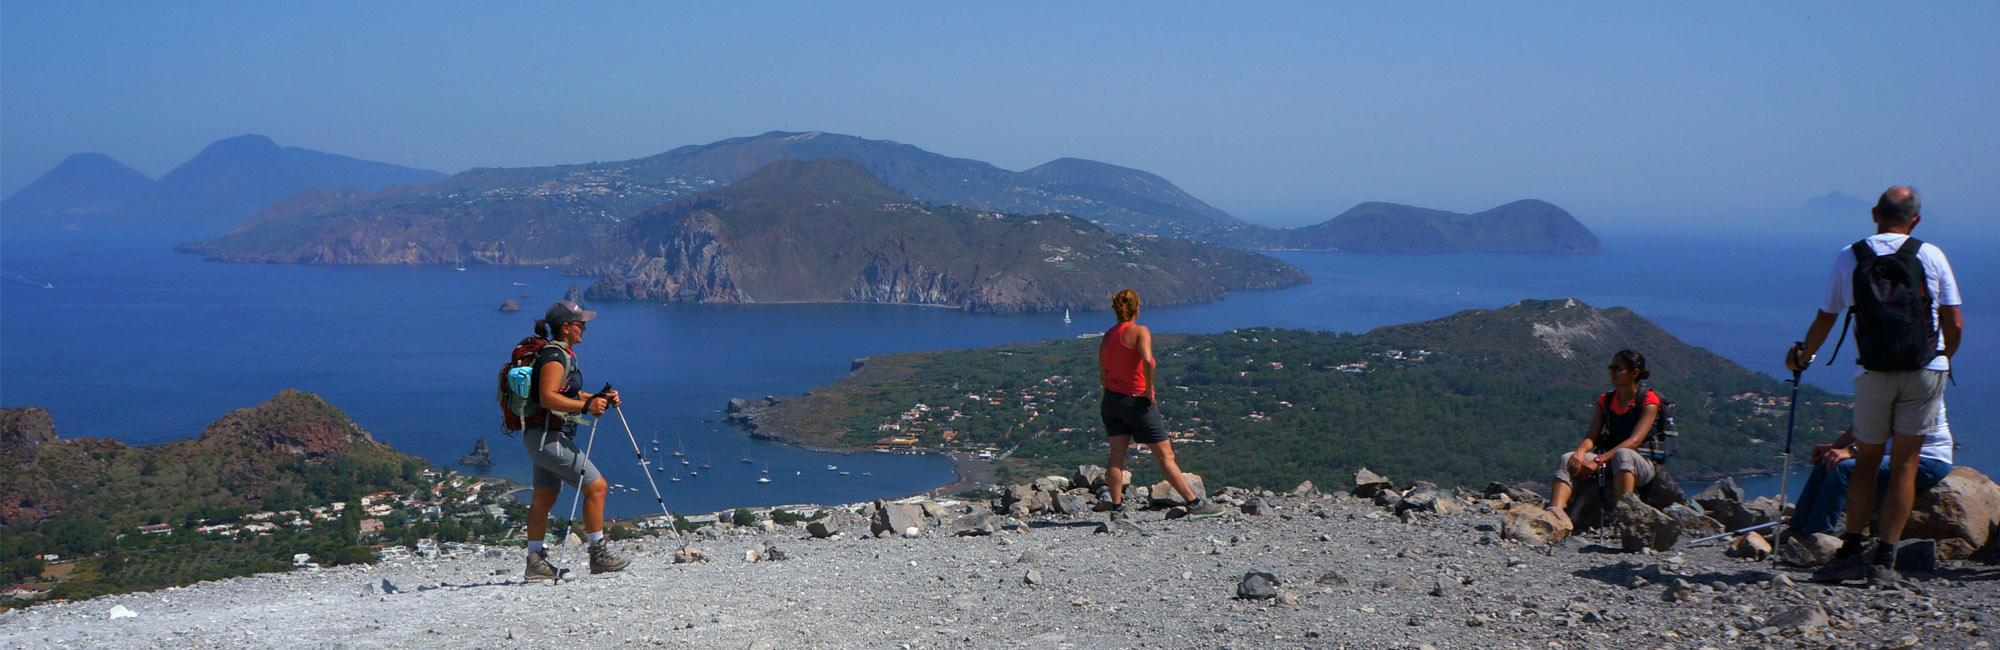 Sicily volcanoes and islands tour